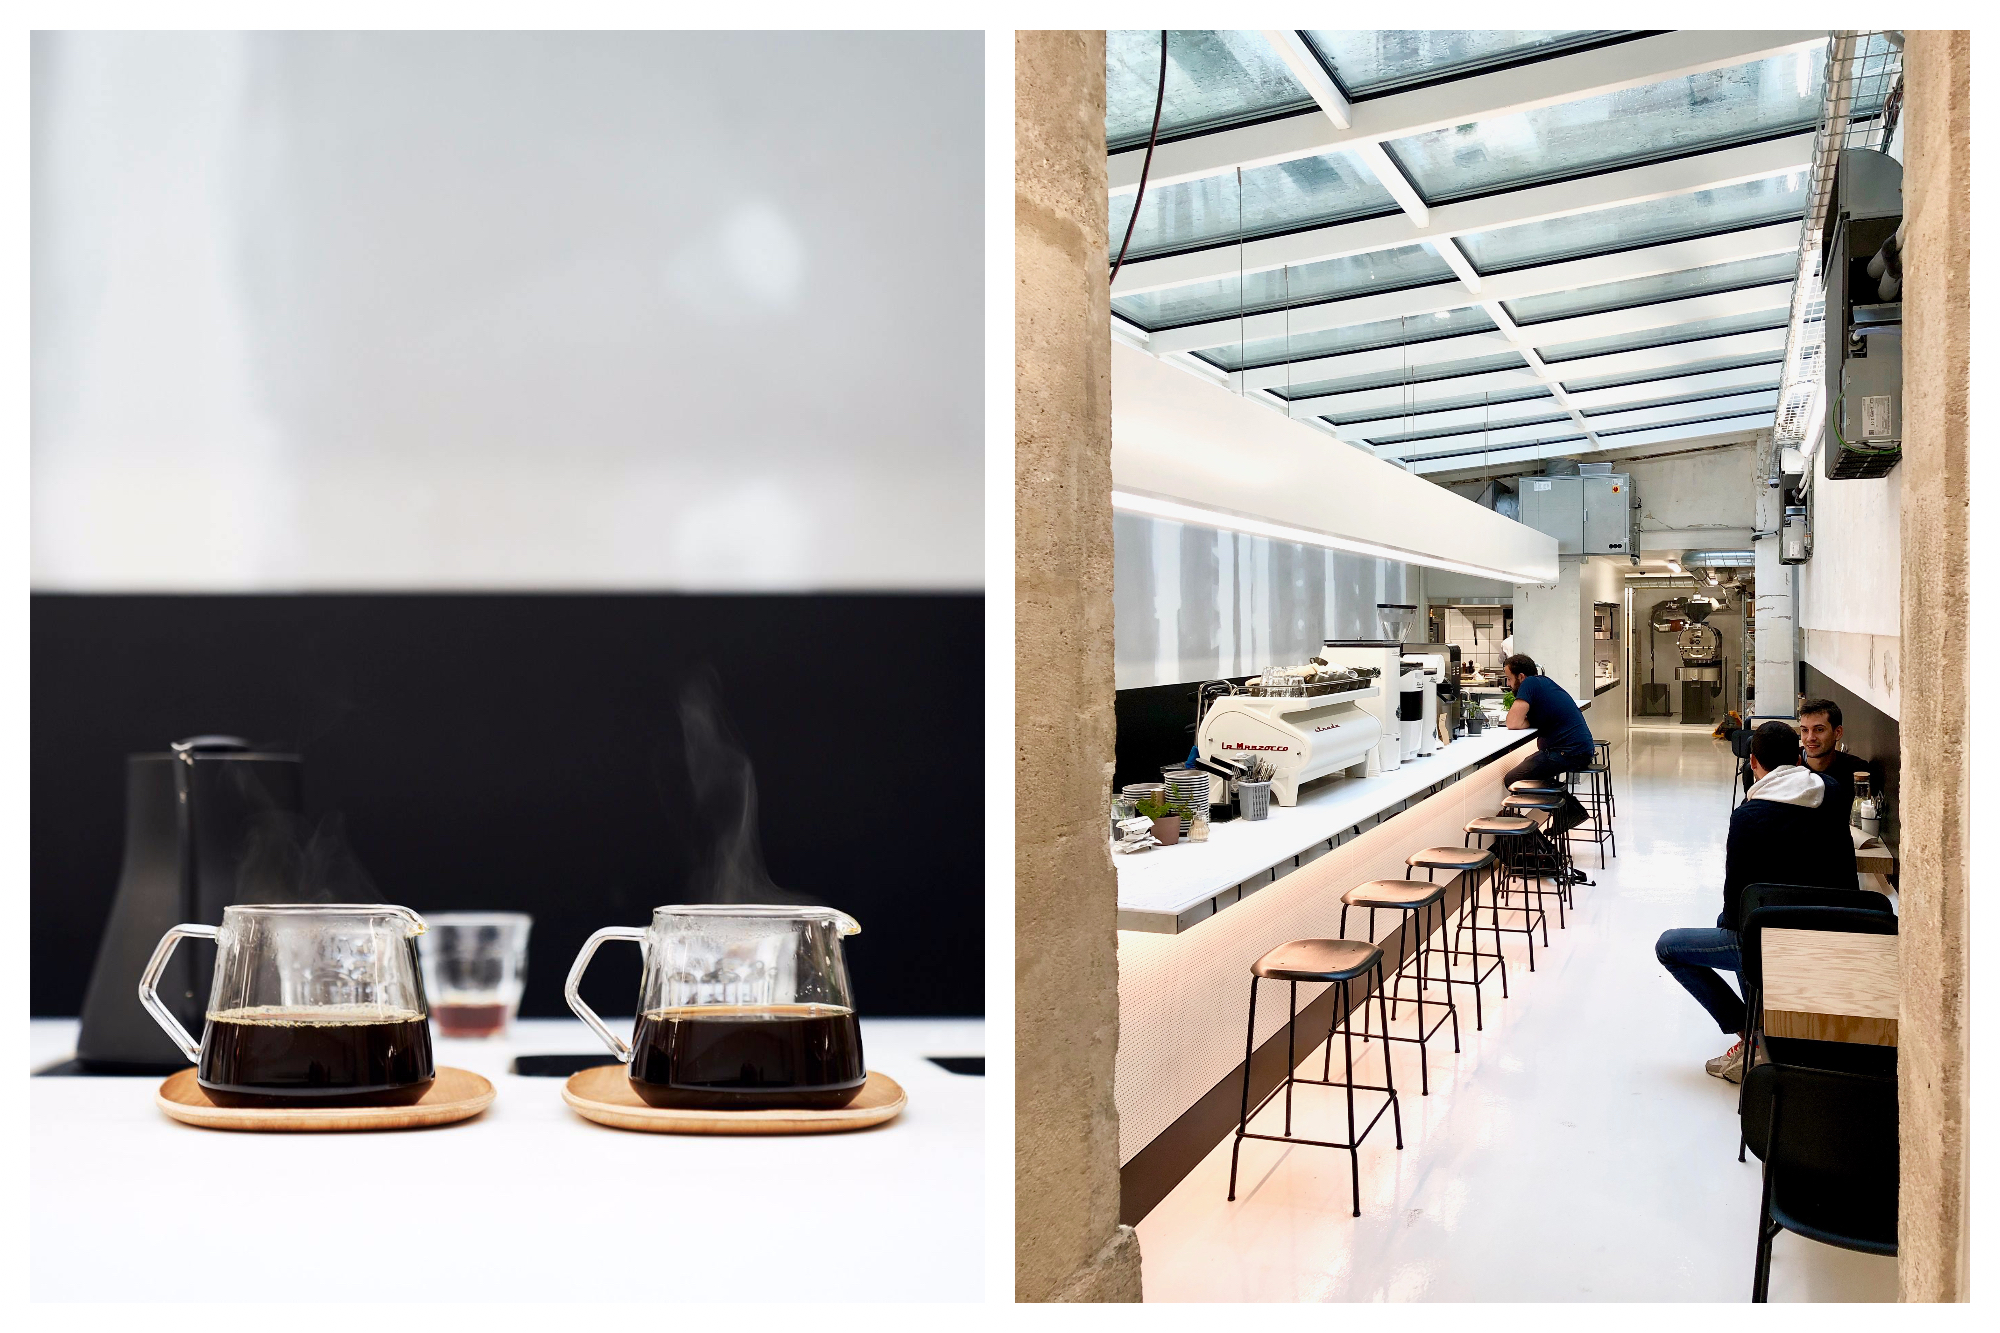 Two pots of glass steaming coffee pots (left) and zen interiors with glass roof (right) at Paris café Back in Black.